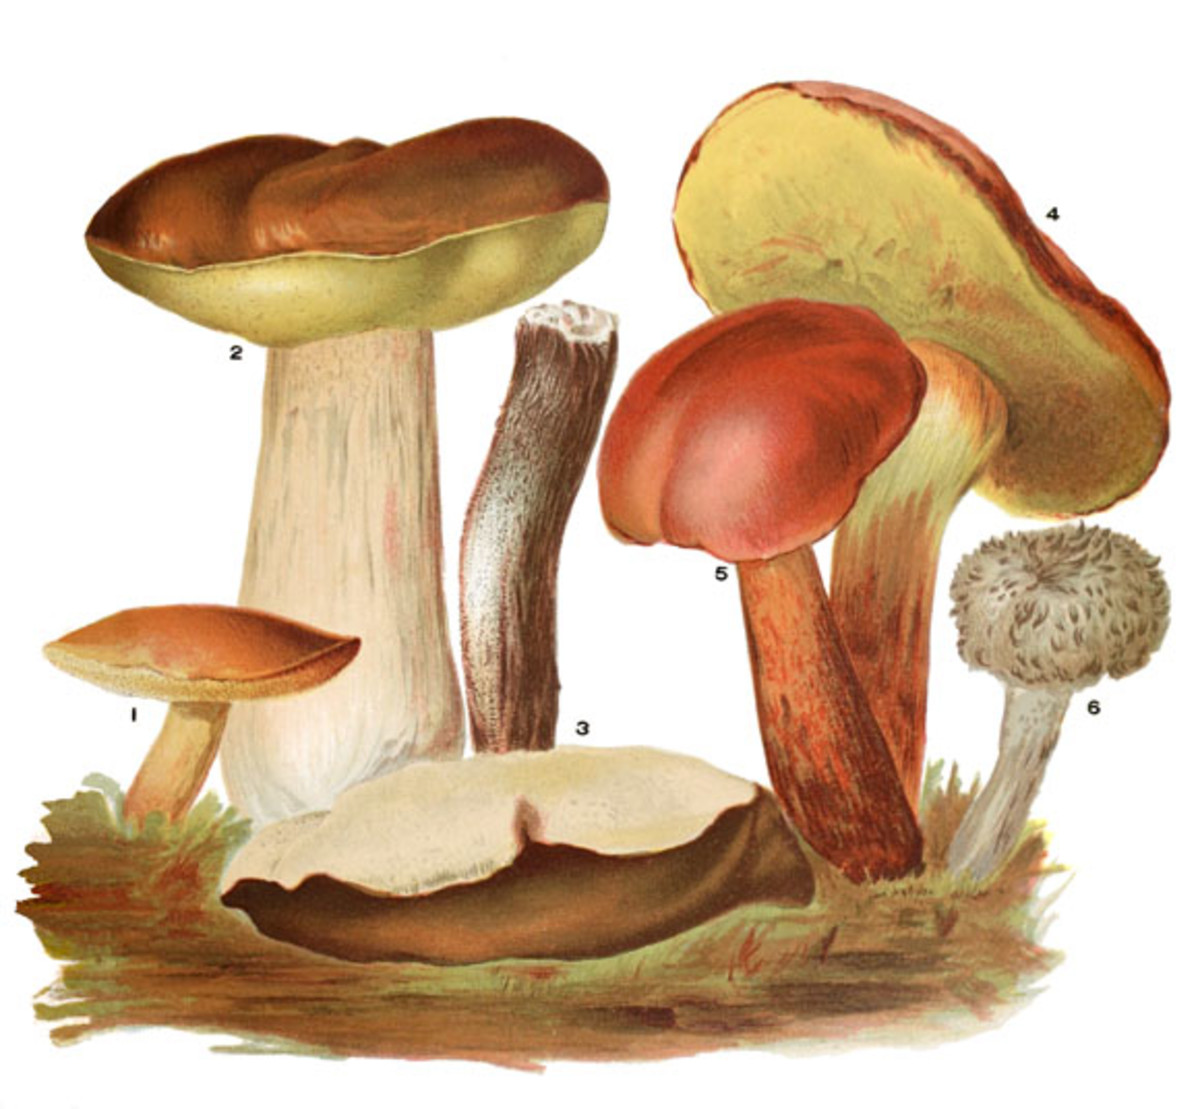 Some edible Russulas of the Basidiomycota